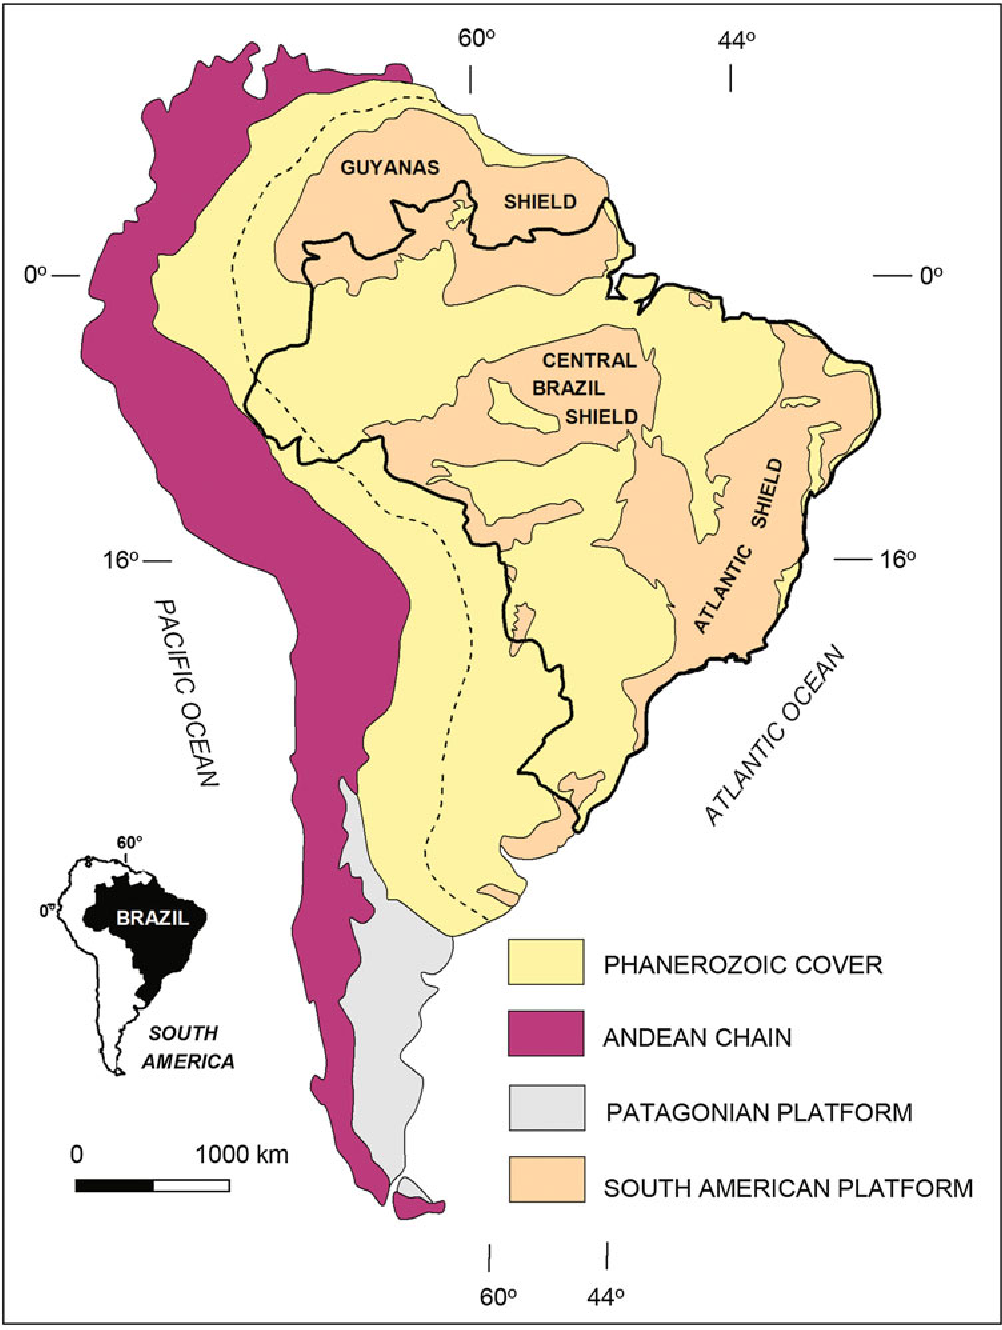 Figure 2.1 from 2 Geological Background : A Tectonic ... on landscape map of south america, industrial map of south america, agricultural map of south america, soil map of south america, peopling of south america, physical map of south america, geographical center of south america, grand tour of south america, natural map of south america, tectonic map of south america, linguistic map of south america, land use map of south america, map of volcanoes in north america, location of patagonia in south america, circumnavigation of south america, earthquake map of south america, precambrian north america, historic map of south america, thermal map of south america, large map of south america,